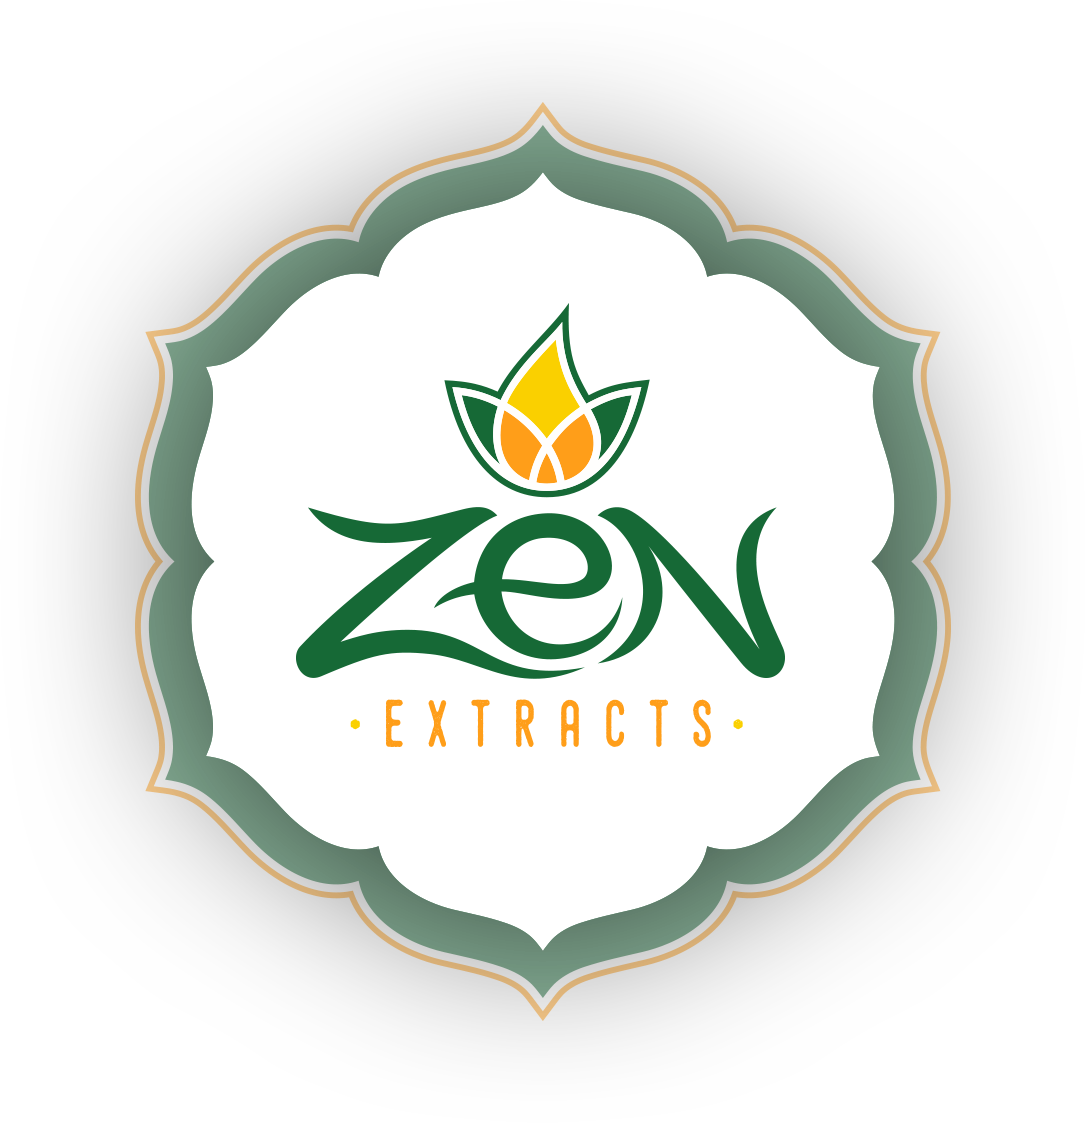 Zen Extracts